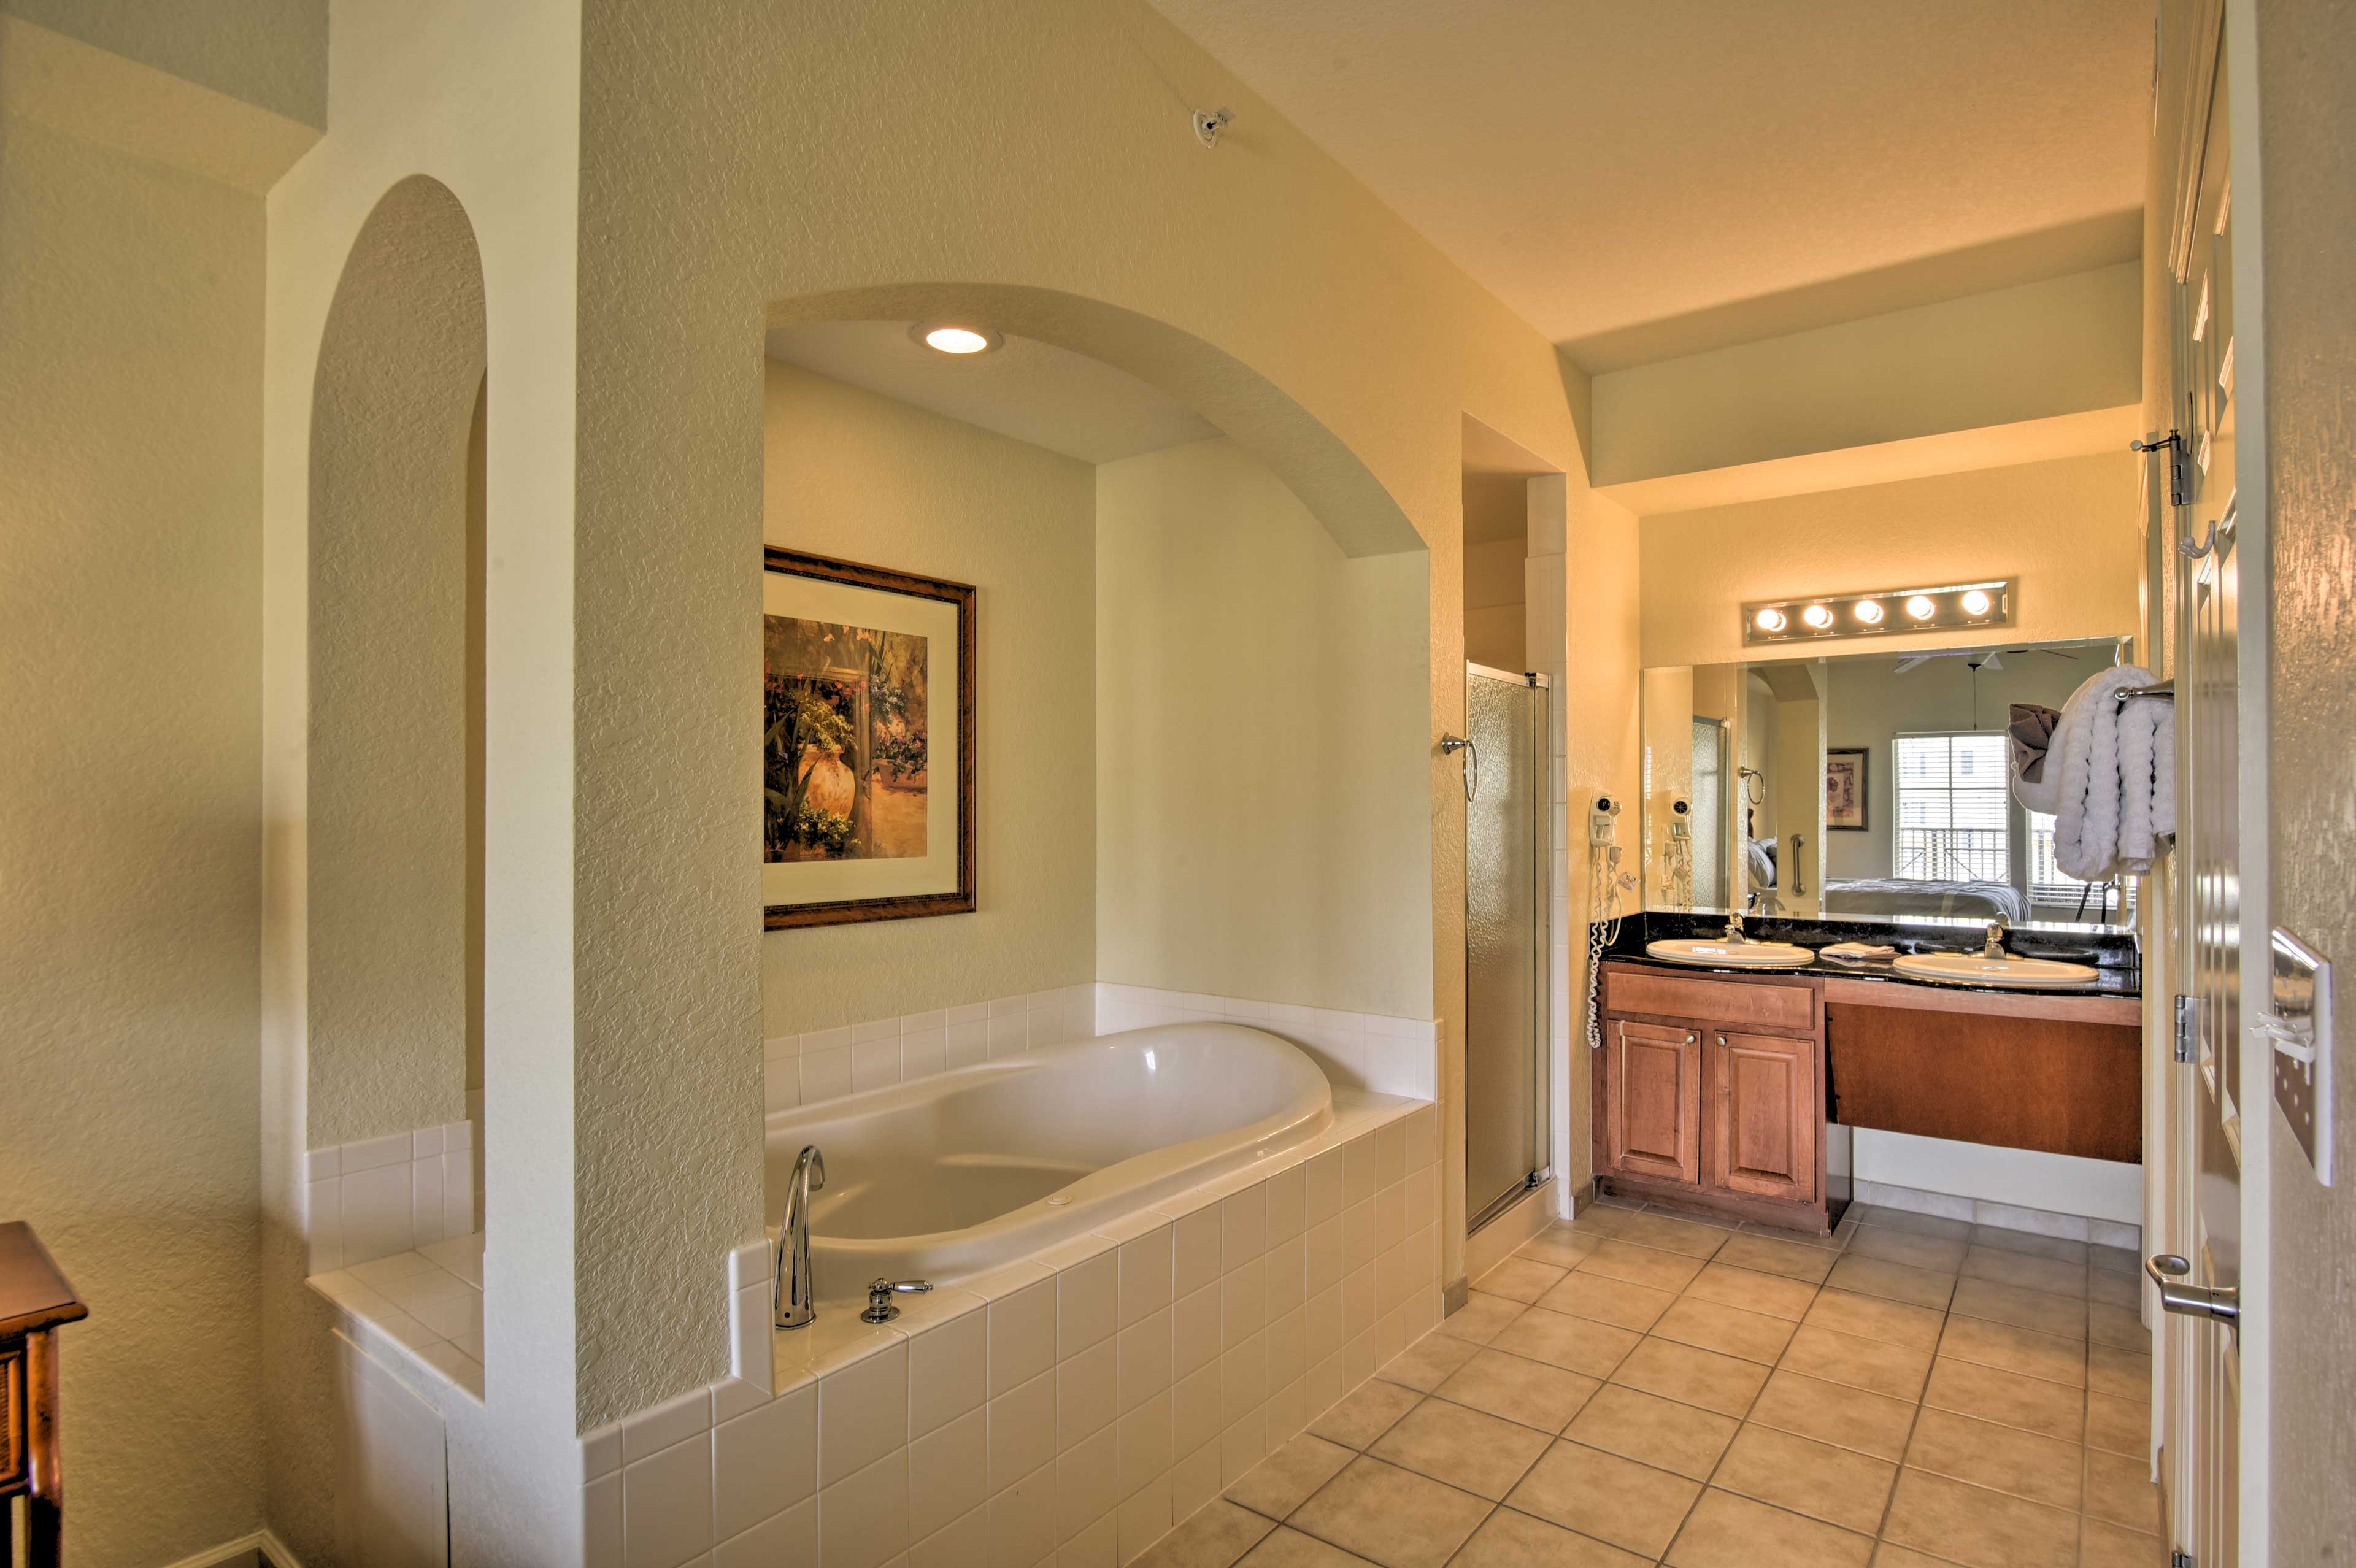 Stay fresh for daily adventures in this en-suite bathroom.